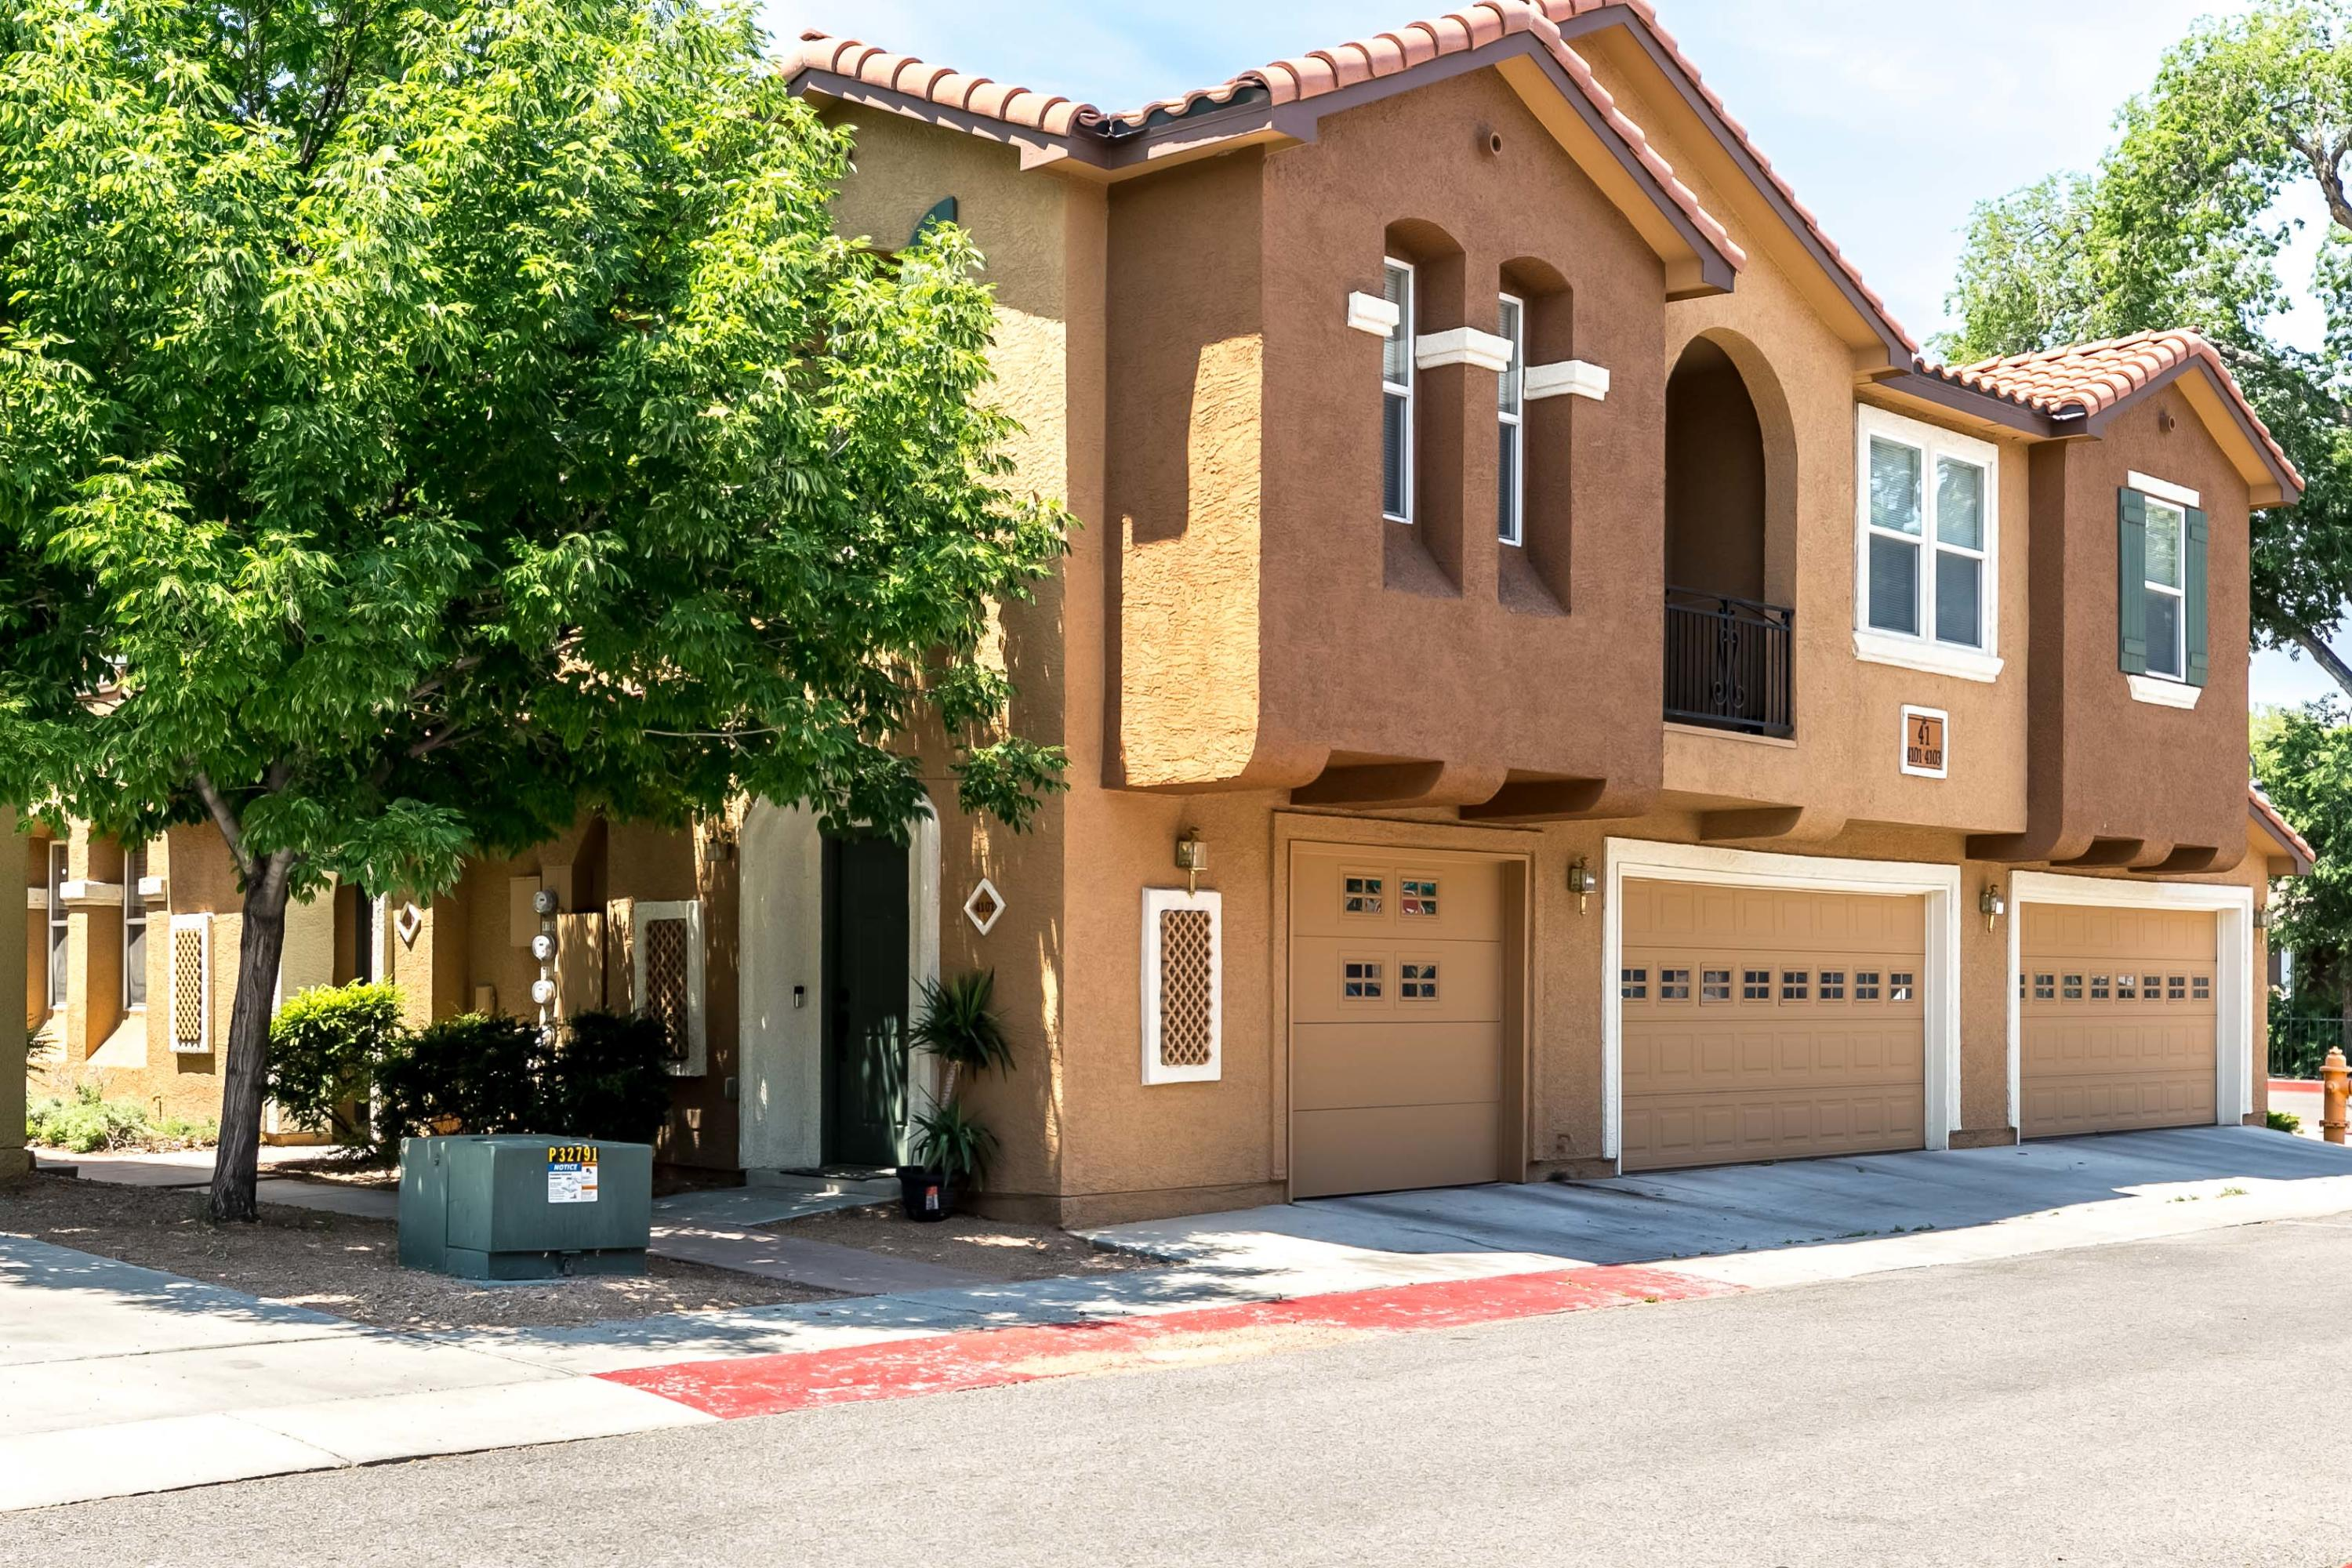 Beautiful home in the Villas gated community.  Lots of amenities are available including a community POOL!  The main floor has an open floor plan with an open kitchen and eating area near the living room and a main floor bedroom with full bathroom.  Upstairs is the master suite with full bath and the other bedrooms.  The home was just freshly painted and has elegant flooring.  Enjoy the outdoors in your own private patio area or hang out near the pool!